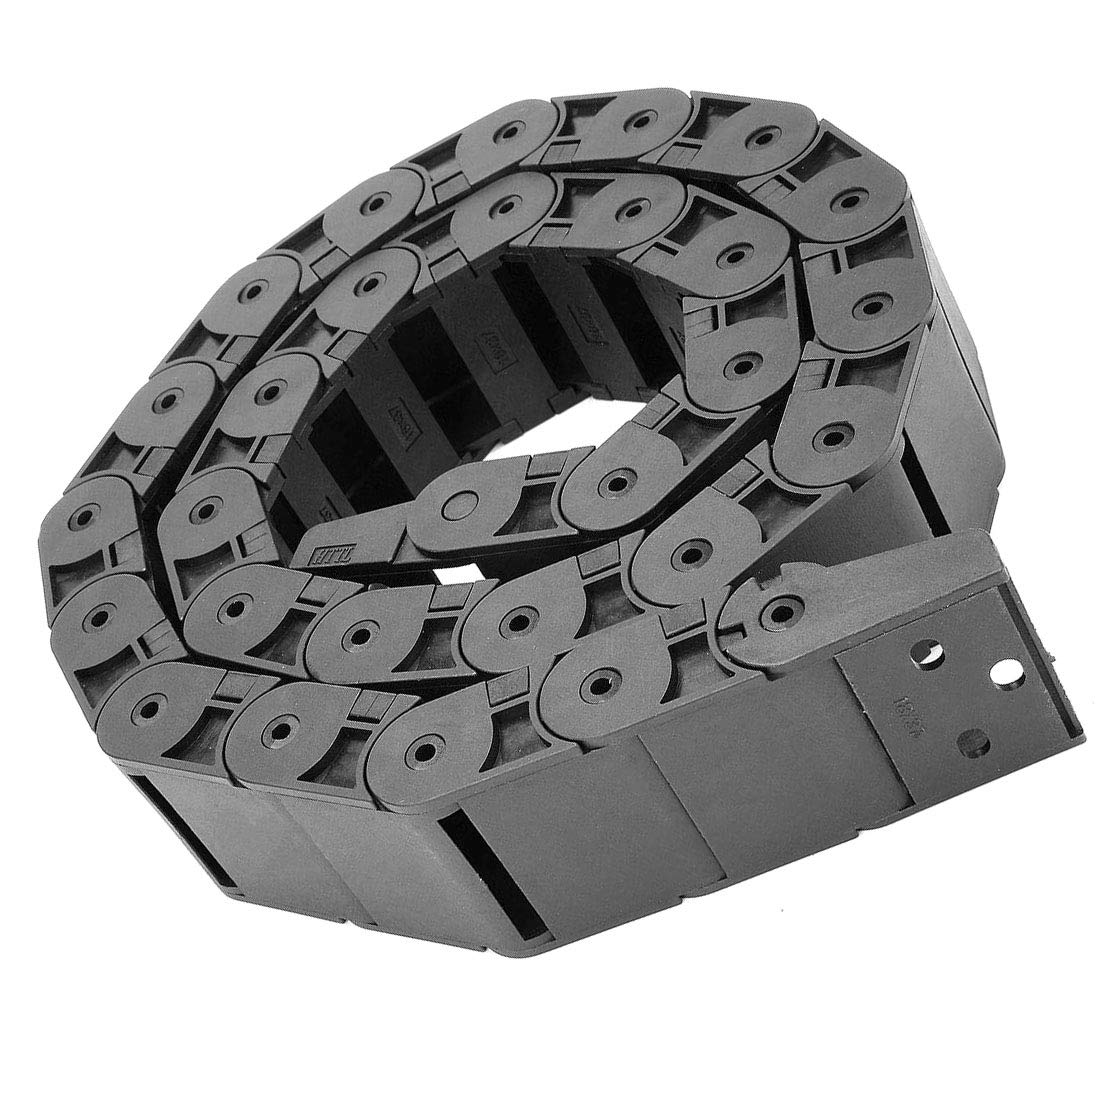 Aodesy 1M//3.3 Ft Plastic Cable Wire Carrier Drag Chain R38 18mm x 37mm Flexible Nested Semi Closed Drag Chain for CNC Router Shenzhenshiaodesiwujinjidianyouxiangongsi